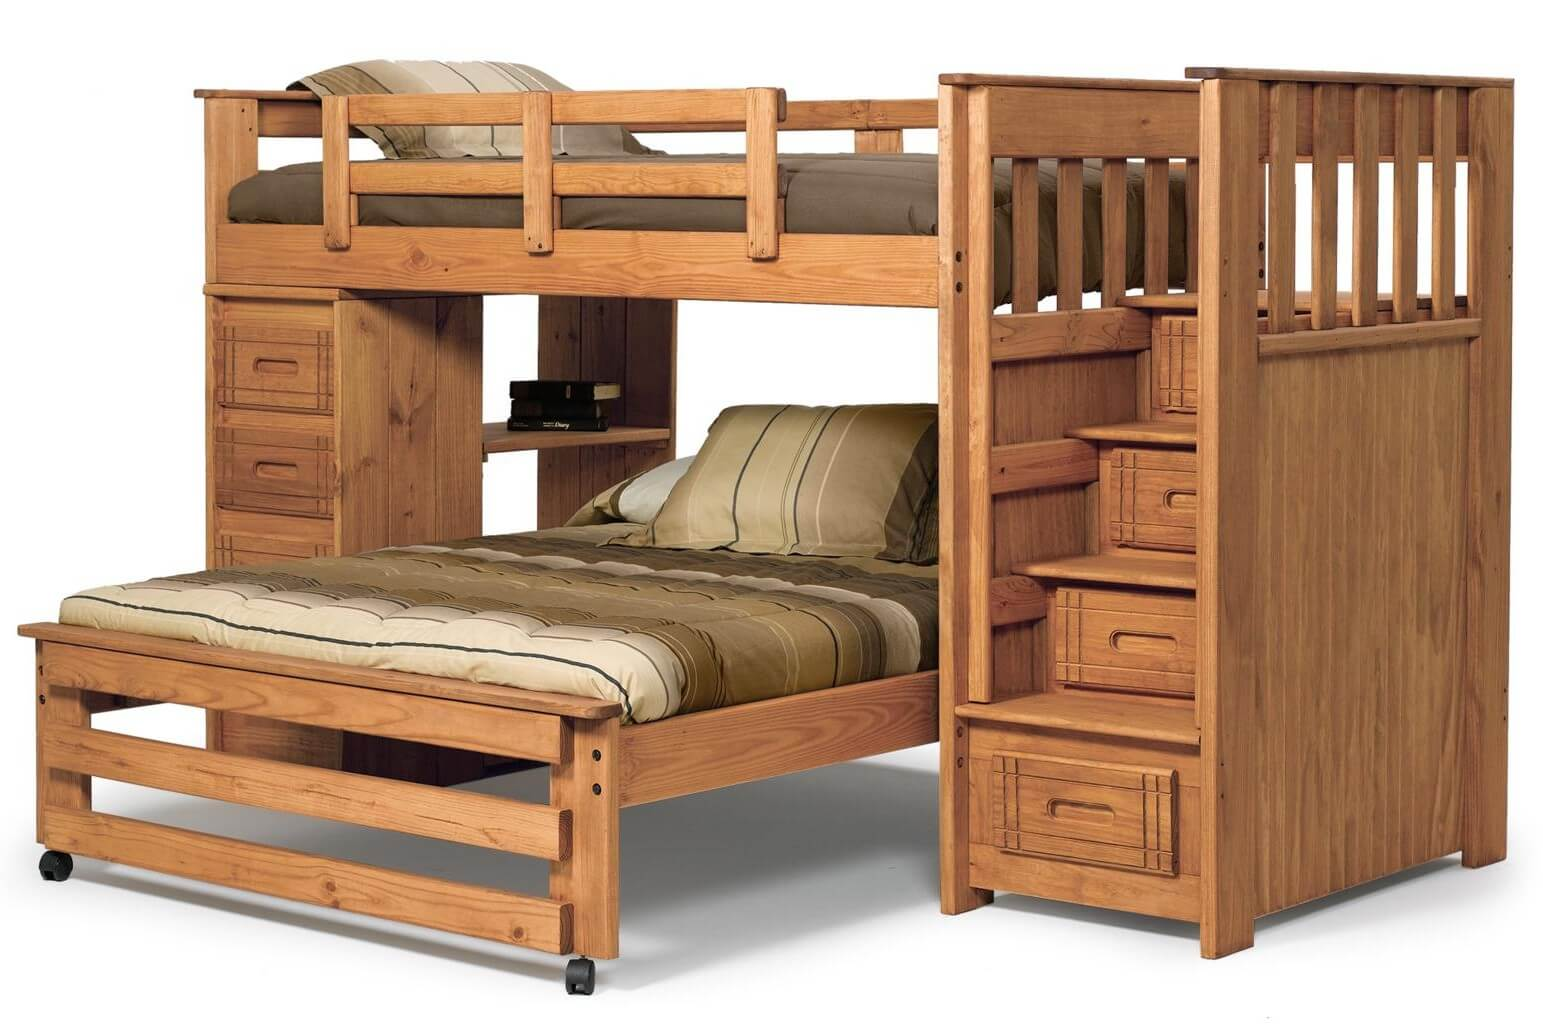 Low loft bed with stairs - Here S A Pine L Shaped Bunk With Twin Over Full Instead Of A Ladder